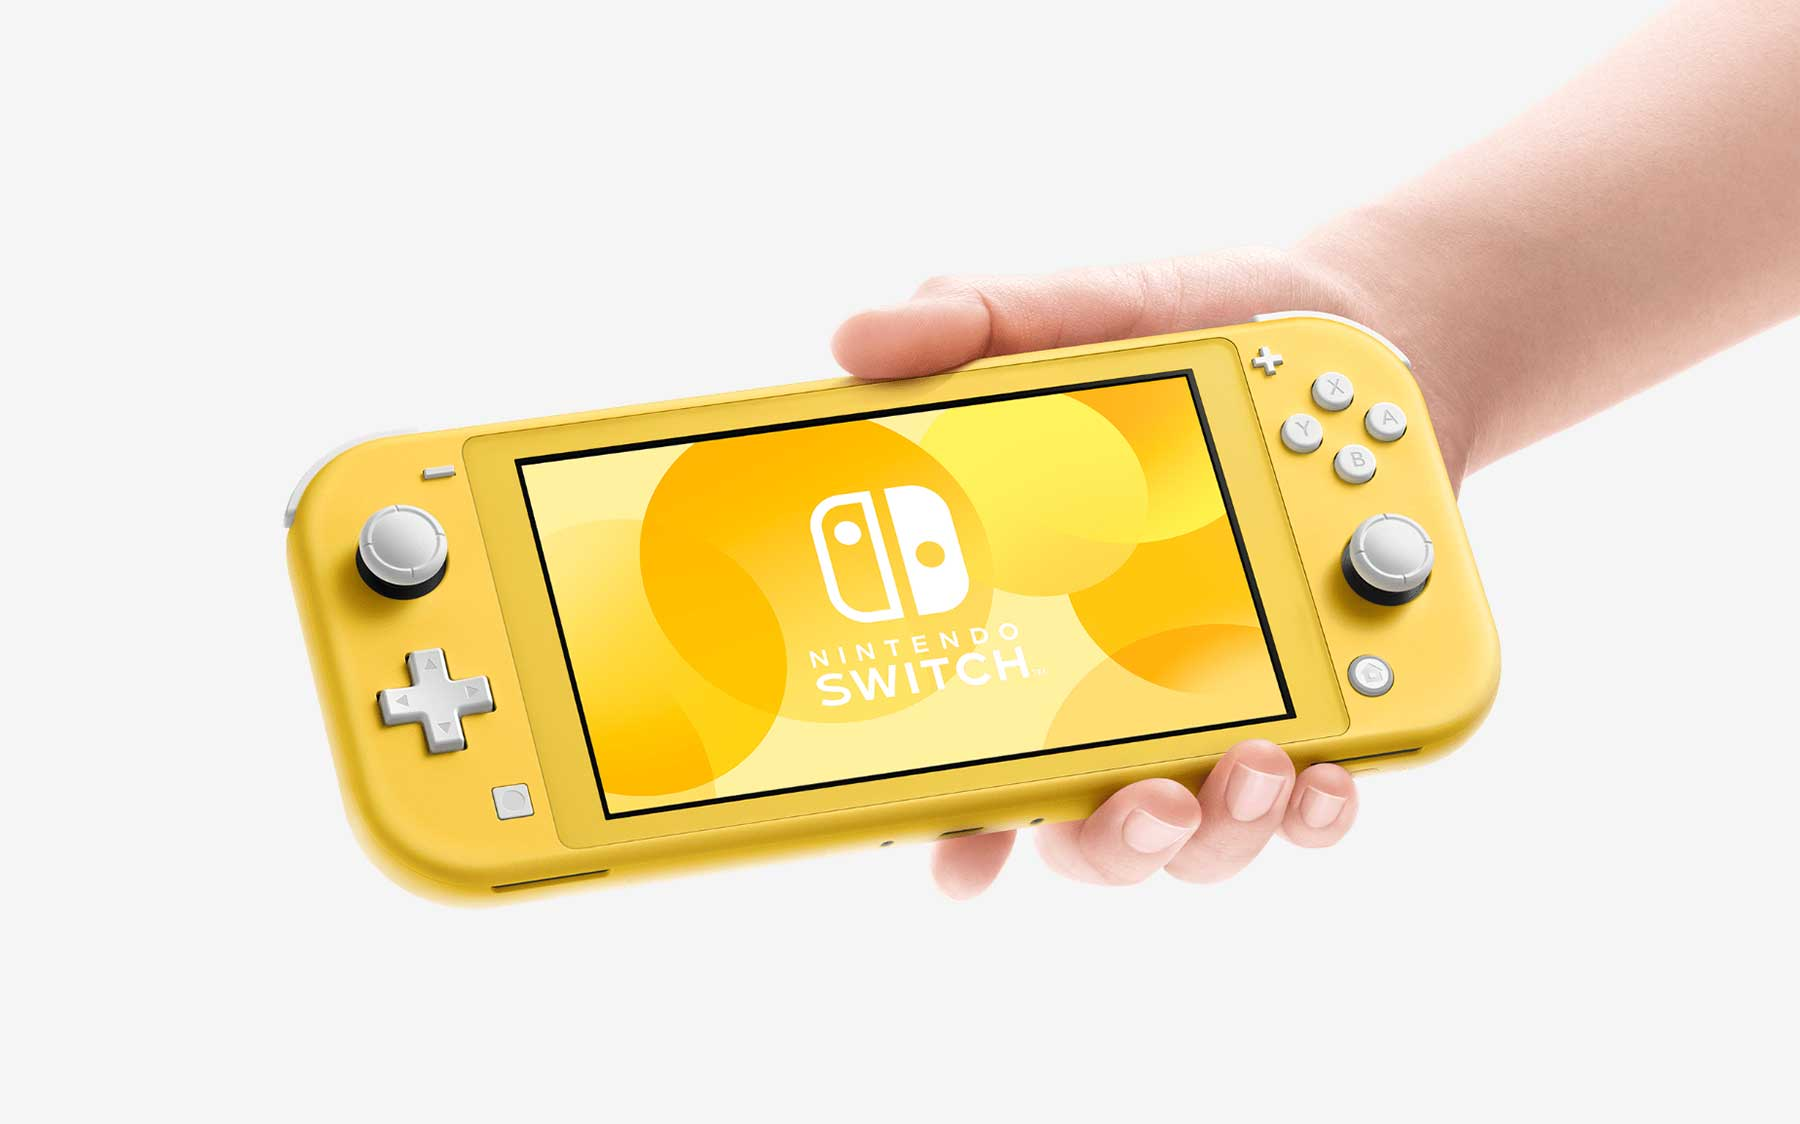 Nintendo Switch Lite: neue Handheld-only Variante der Konsole kommt im September